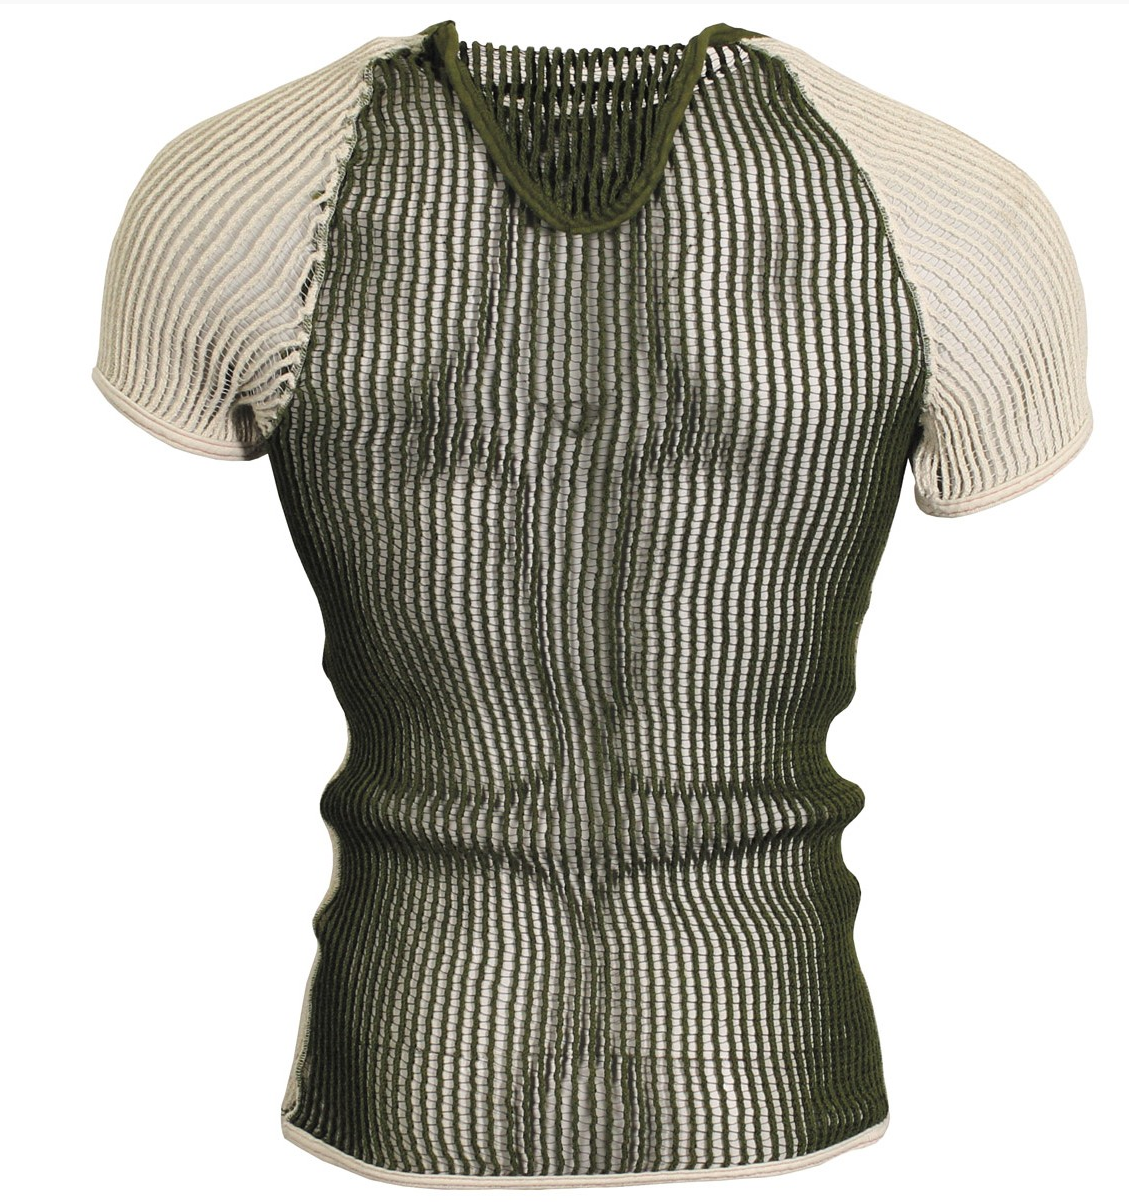 Danish army surplus knitted mesh string vest , green/white